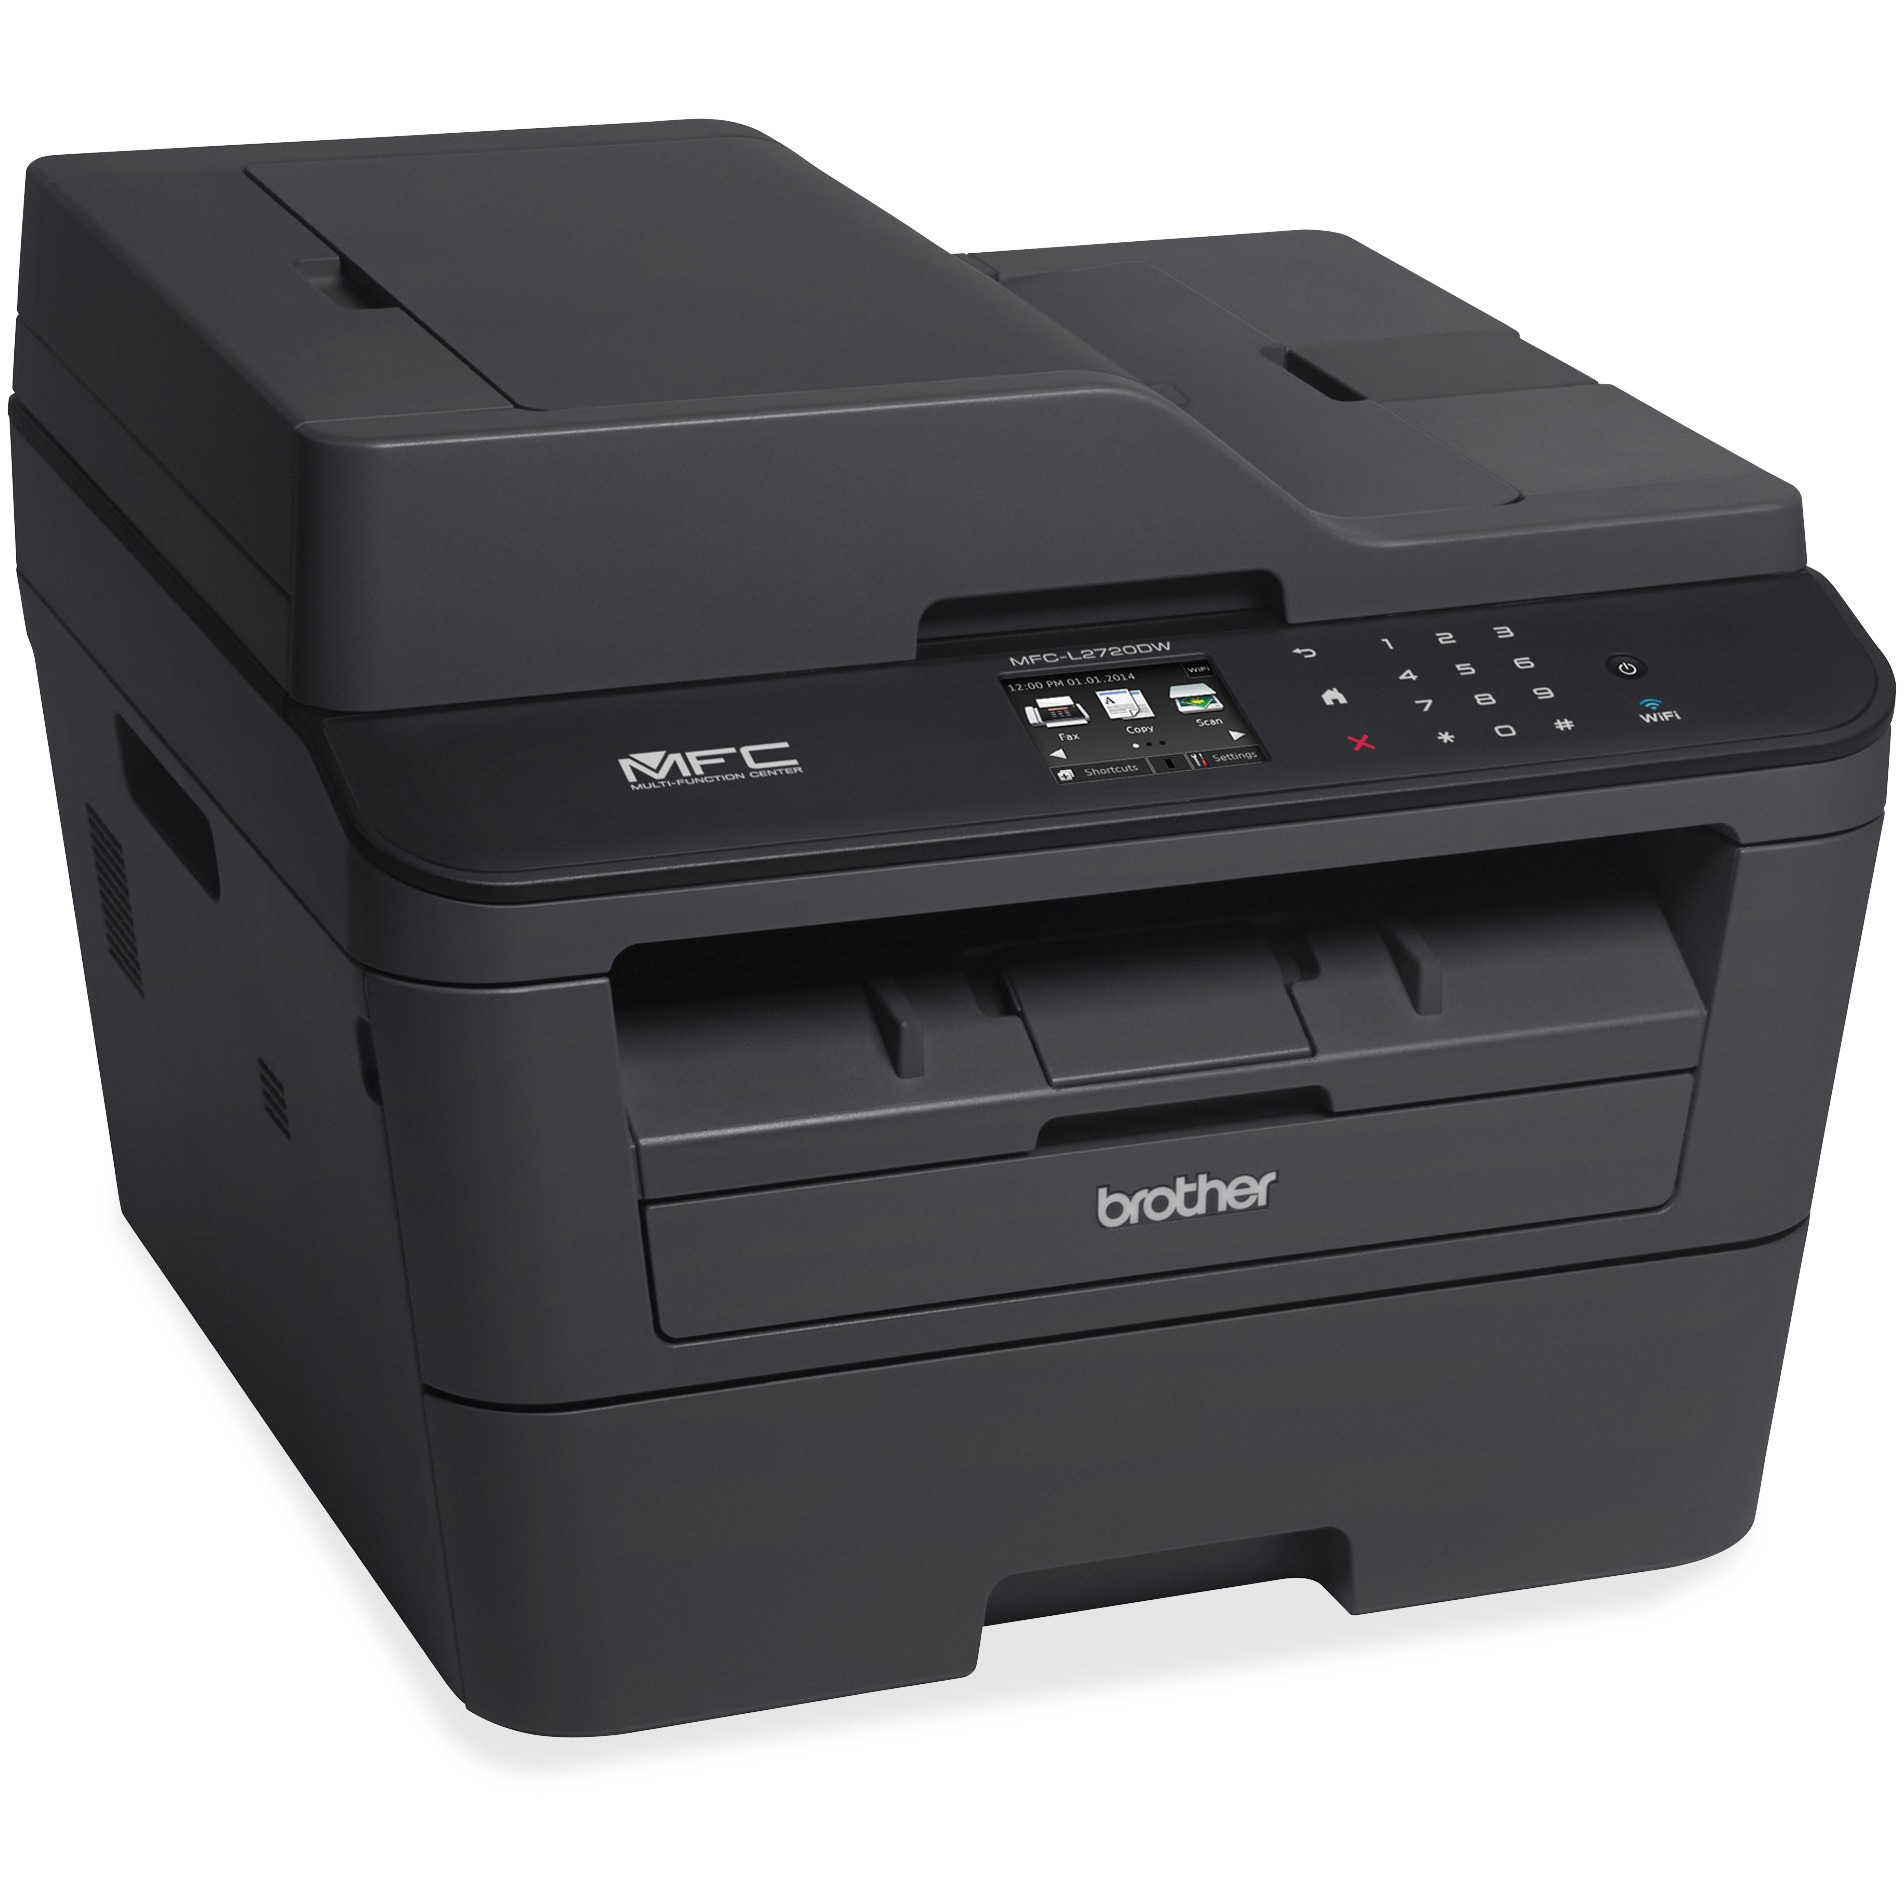 MFC-L2720DW All-in-one Laser Printer